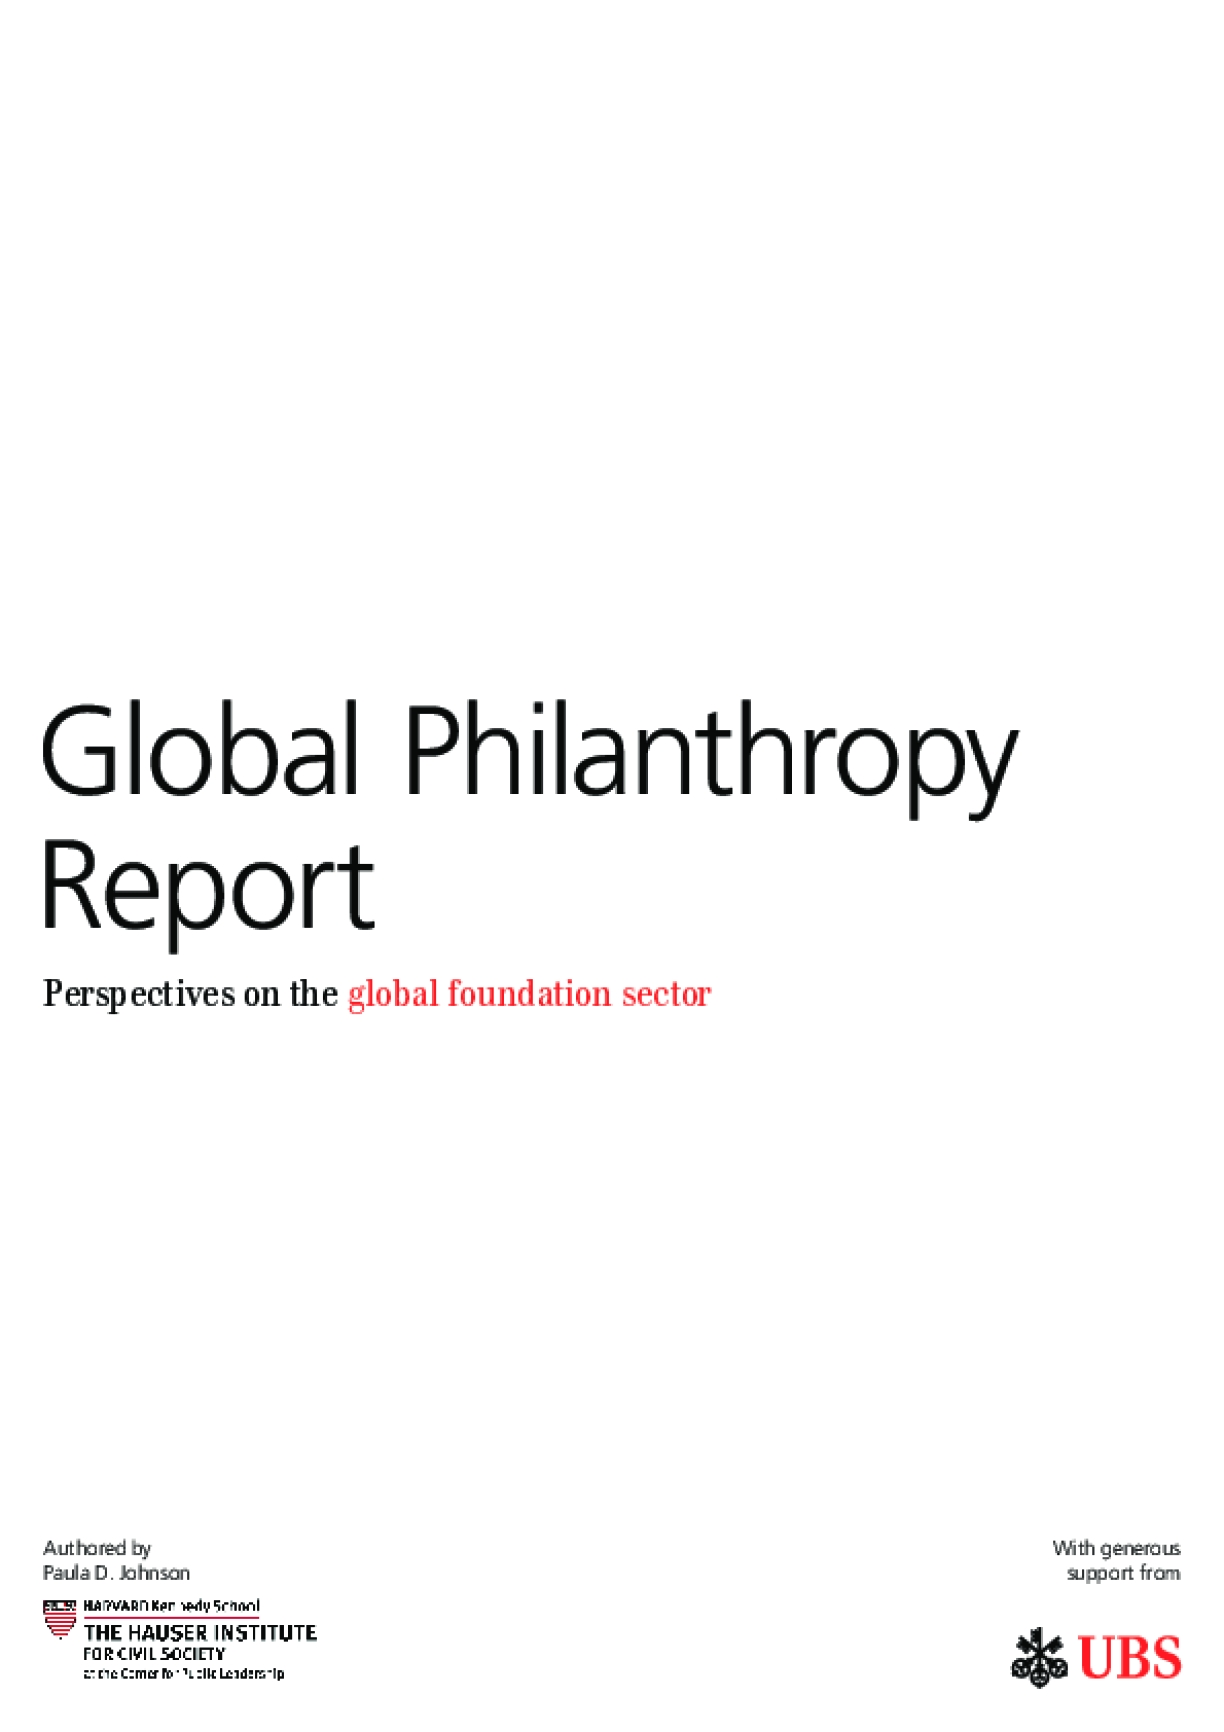 Global Philanthropy Report : Perspectives on the Global Foundation Sector